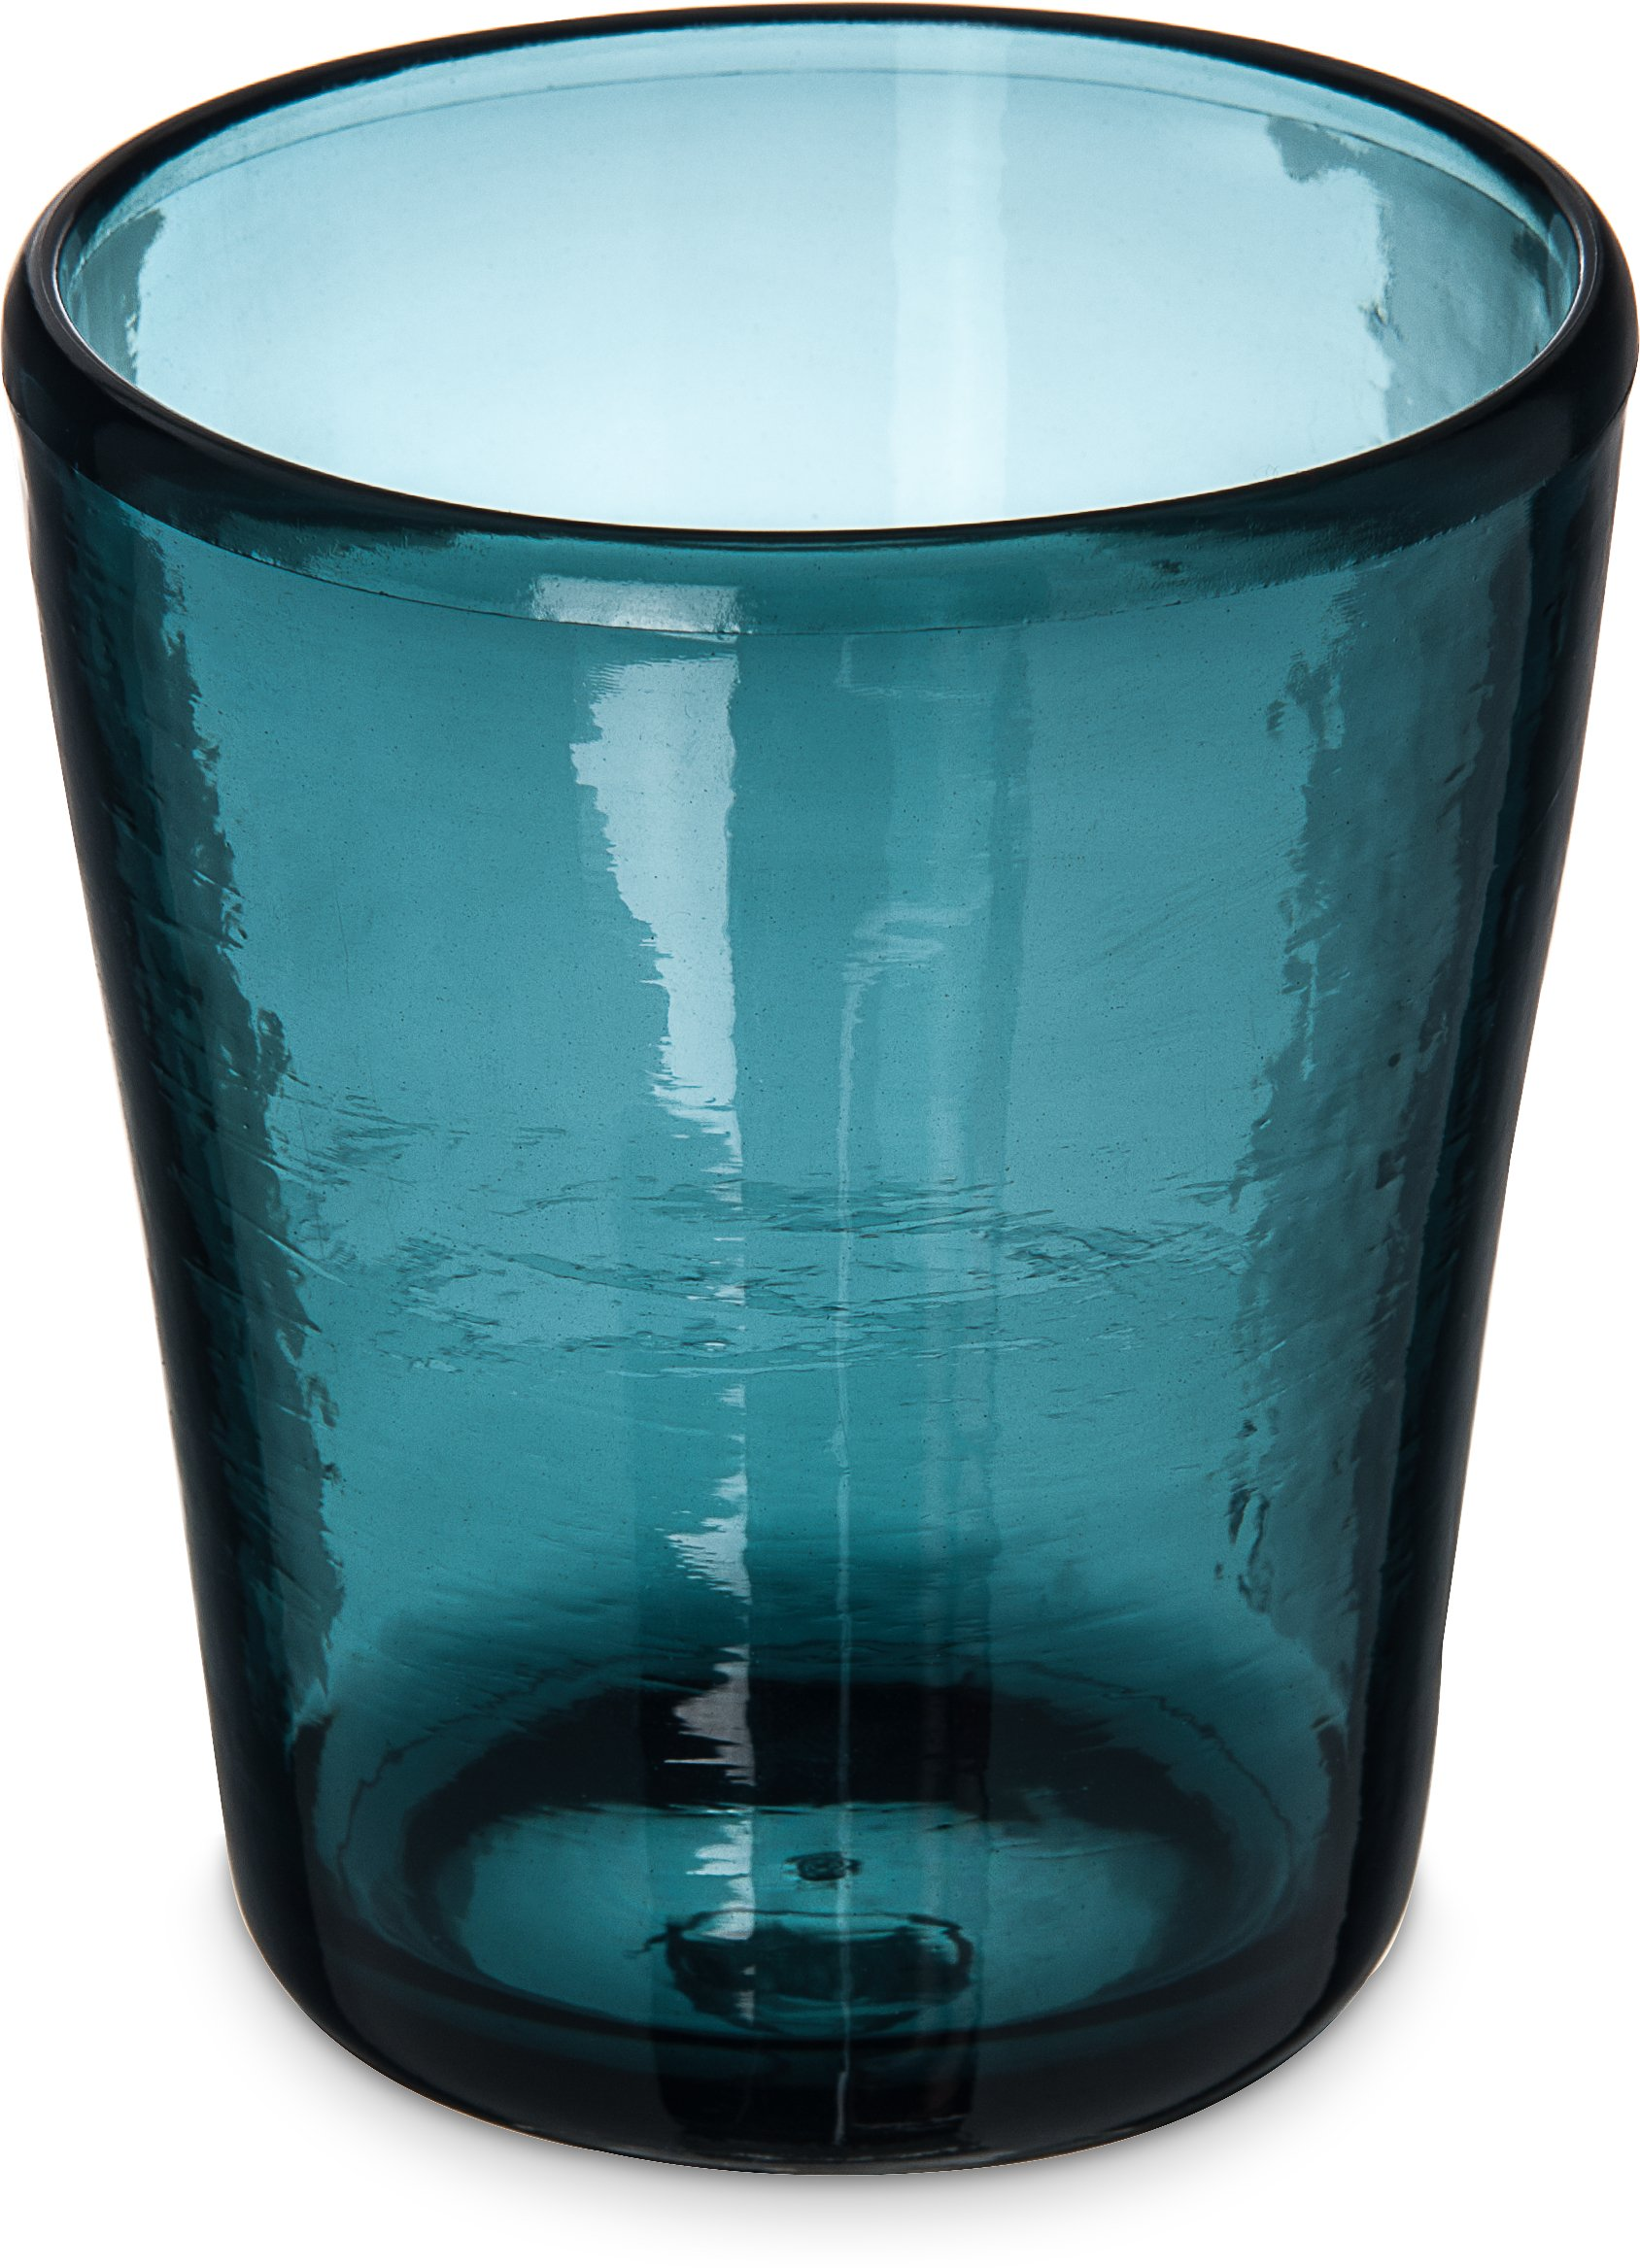 Carlisle MIN544015 Mingle Double Old Fashioned, 14 oz, Tritan, Teal (Pack of 12)